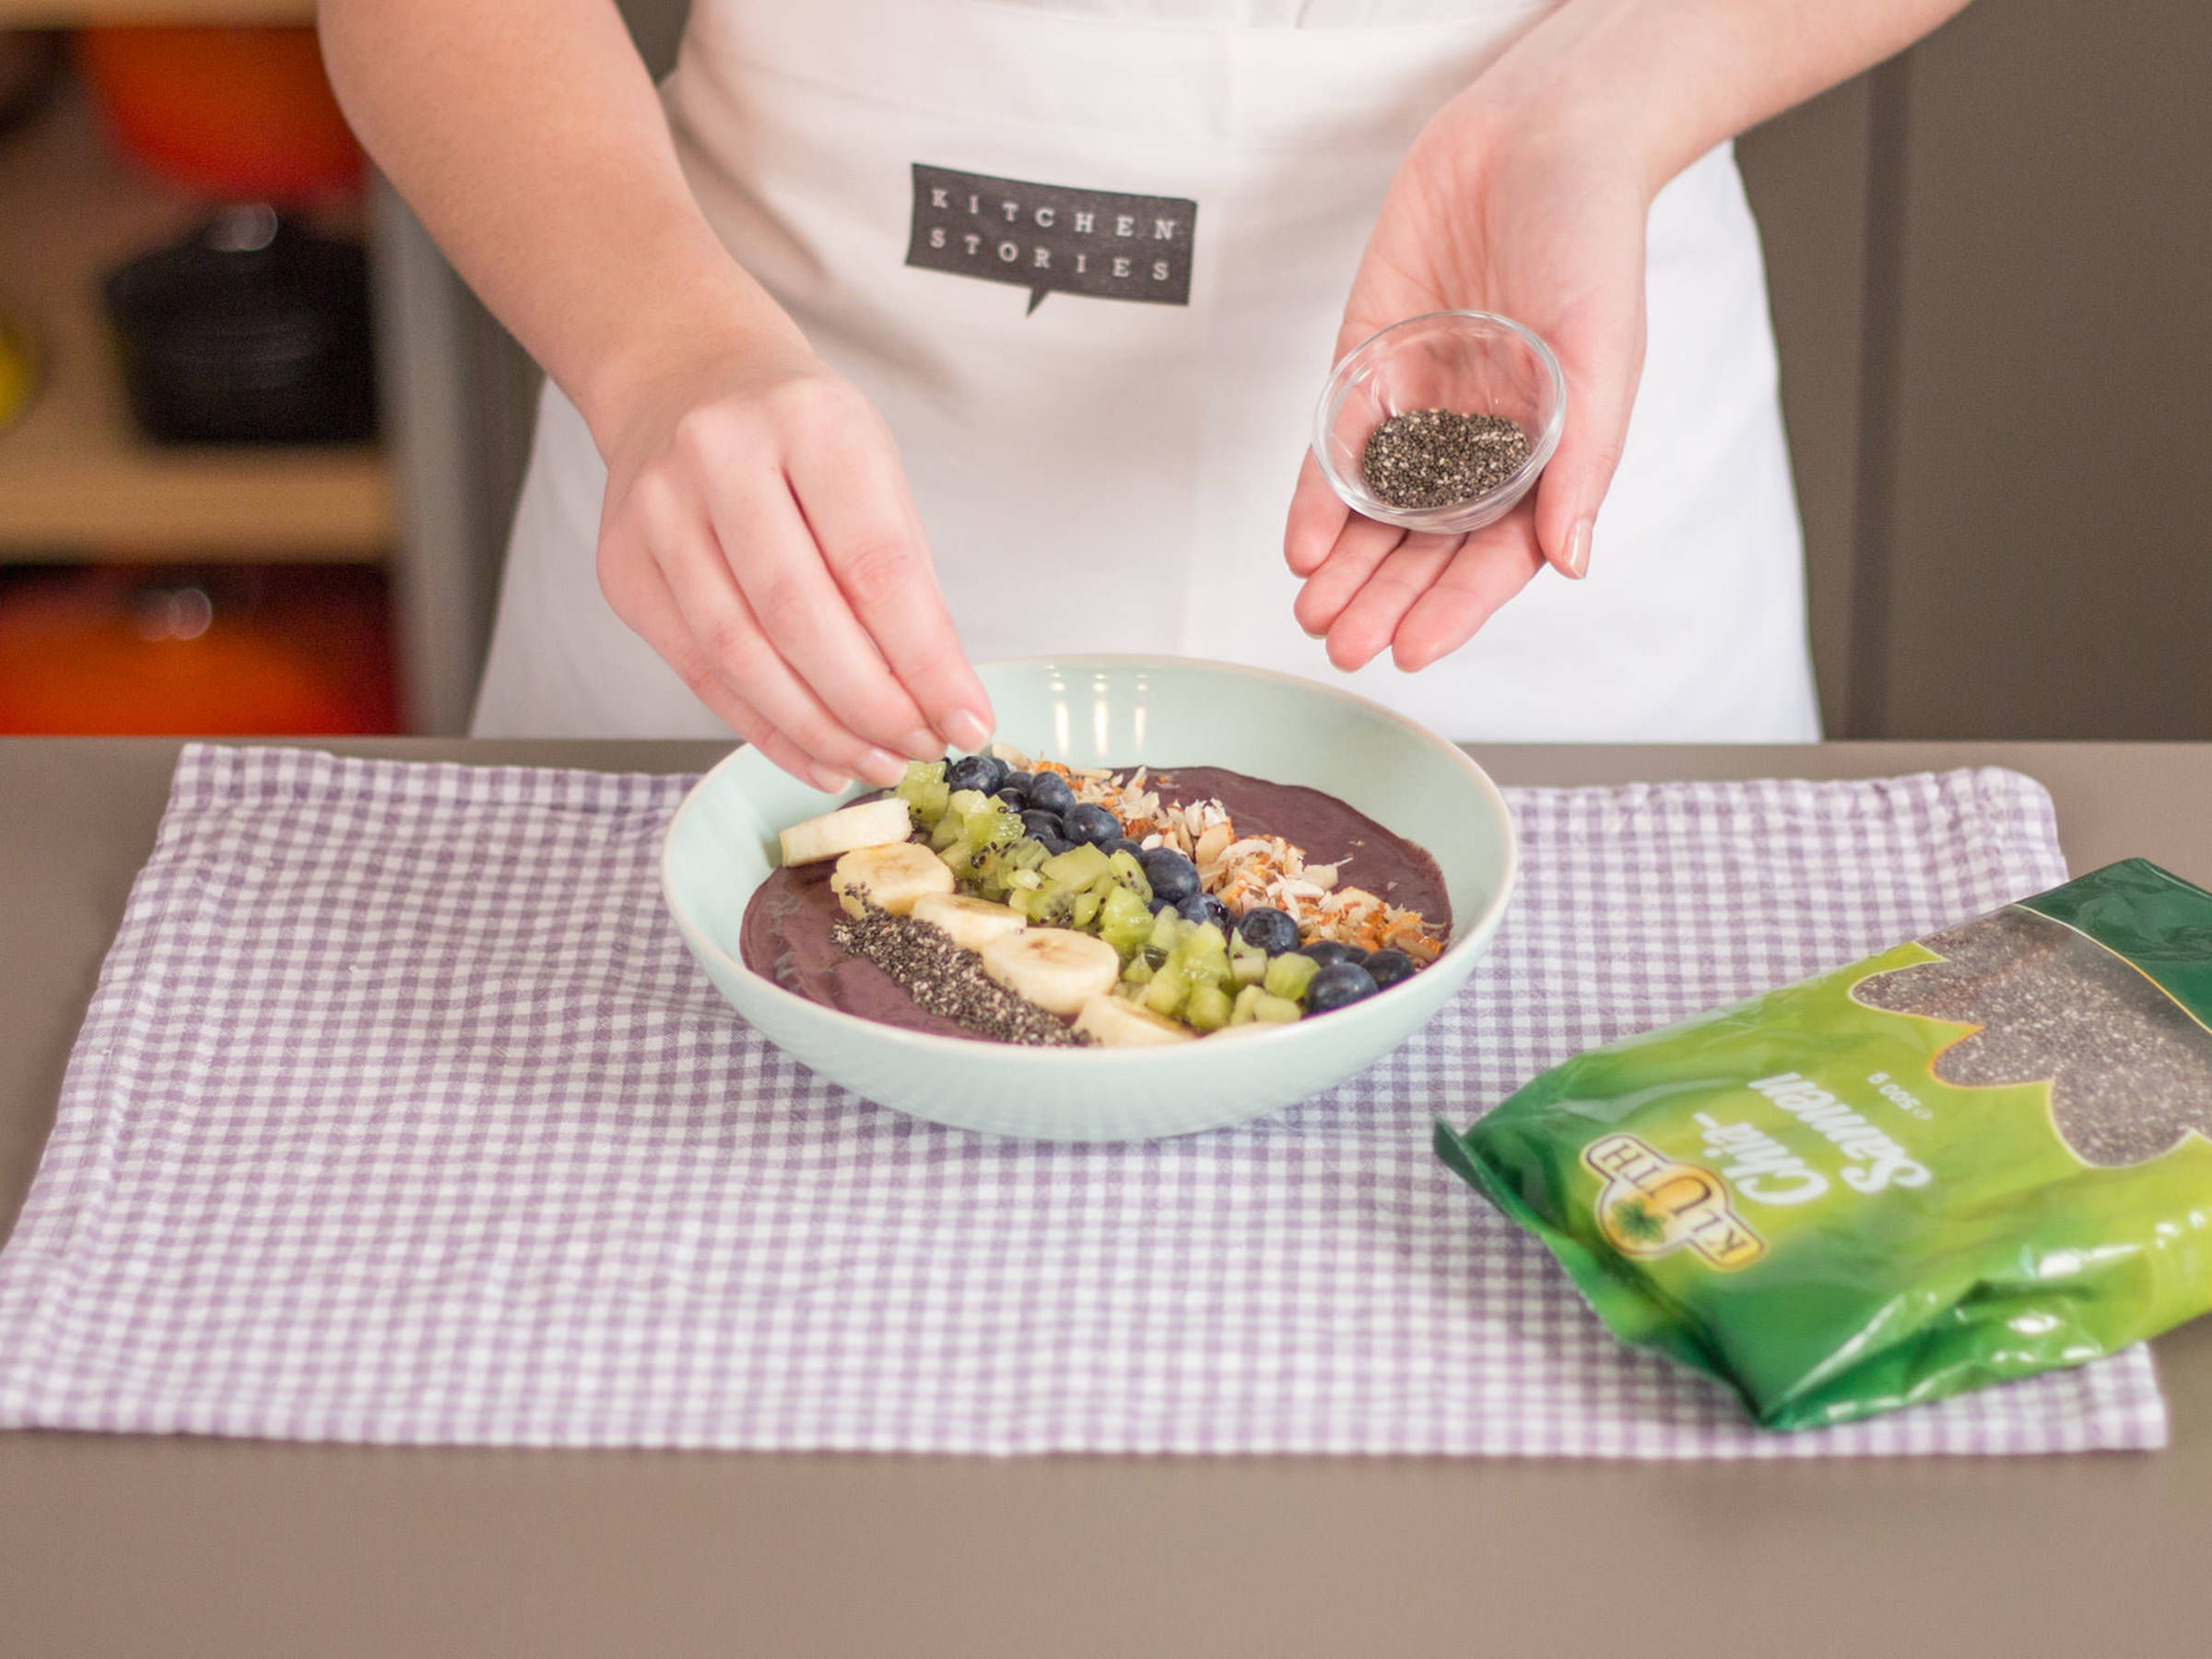 Pour acai puree into a bowl. Garnish with banana, kiwi, blueberries, almonds, and chia seeds. Enjoy as an energizing breakfast or afternoon pick-me-up!